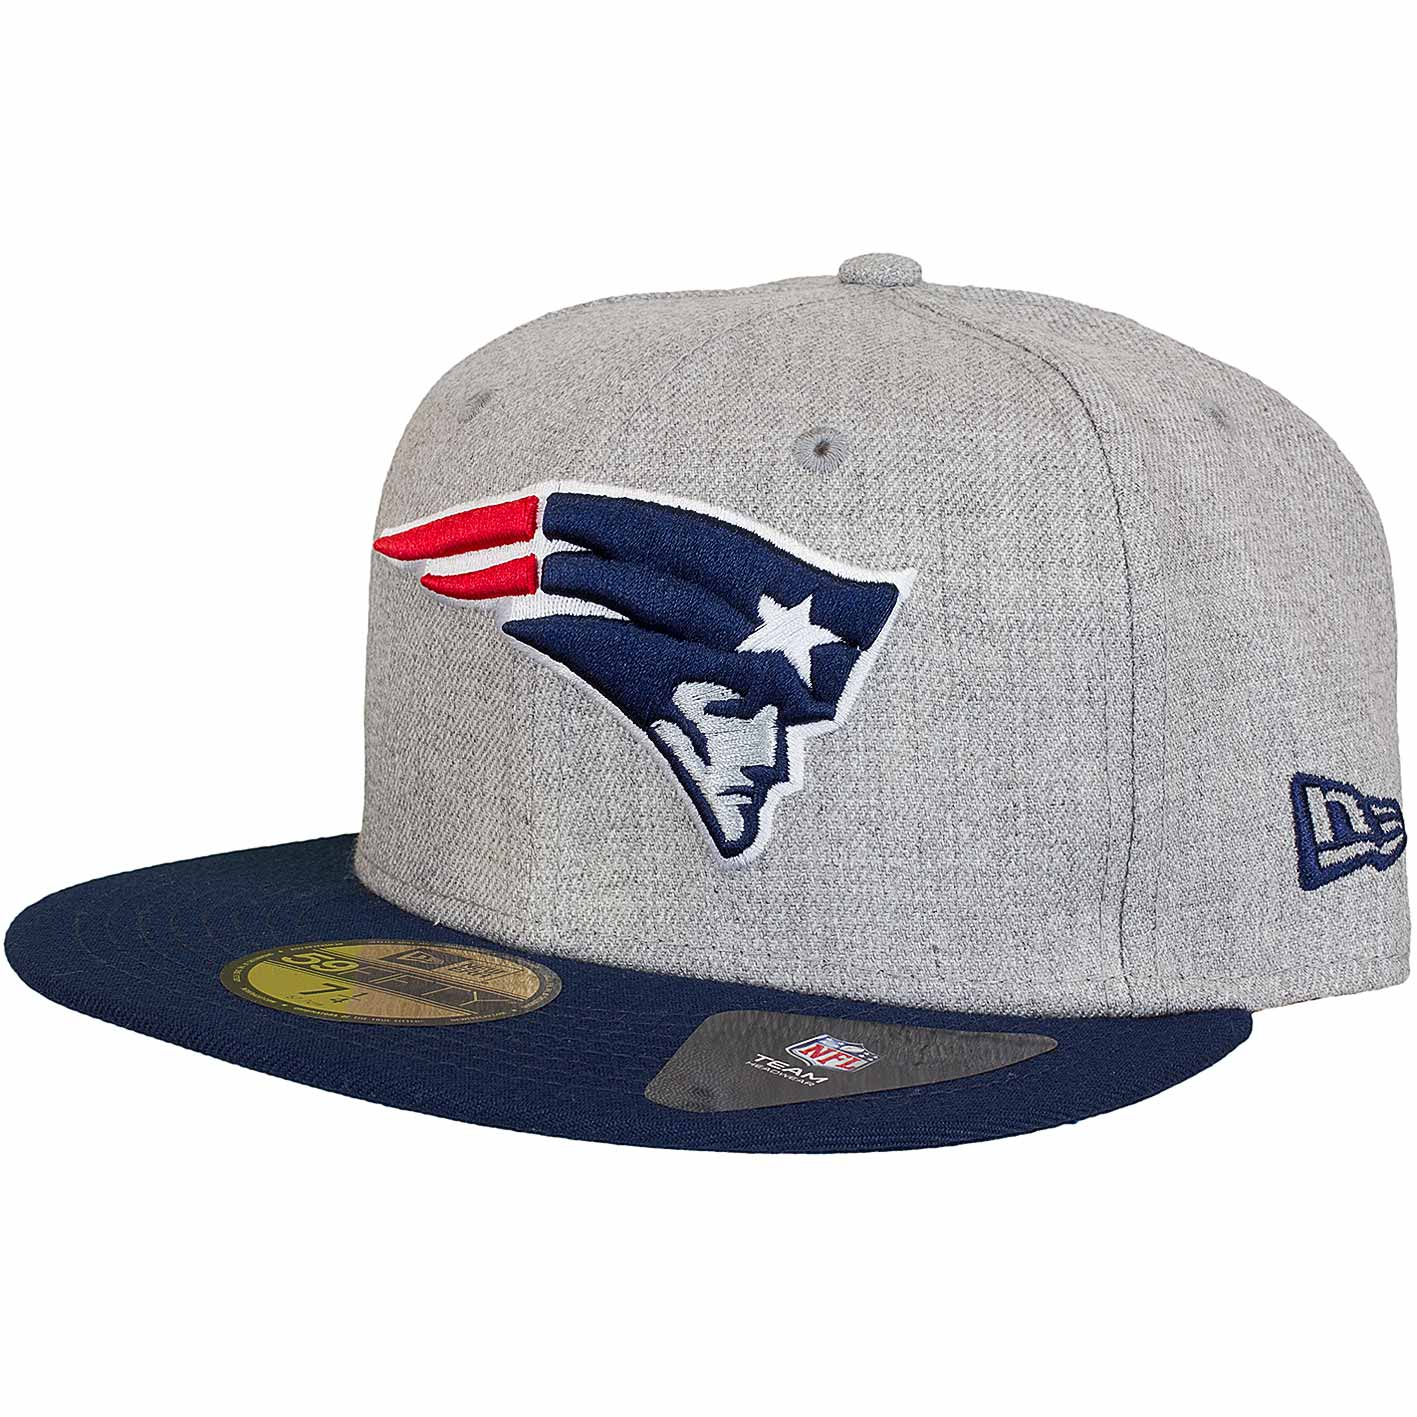 ☆ New Era 59Fifty Fitted Cap Heather New England Patriots grau ... bfbb65c11ae